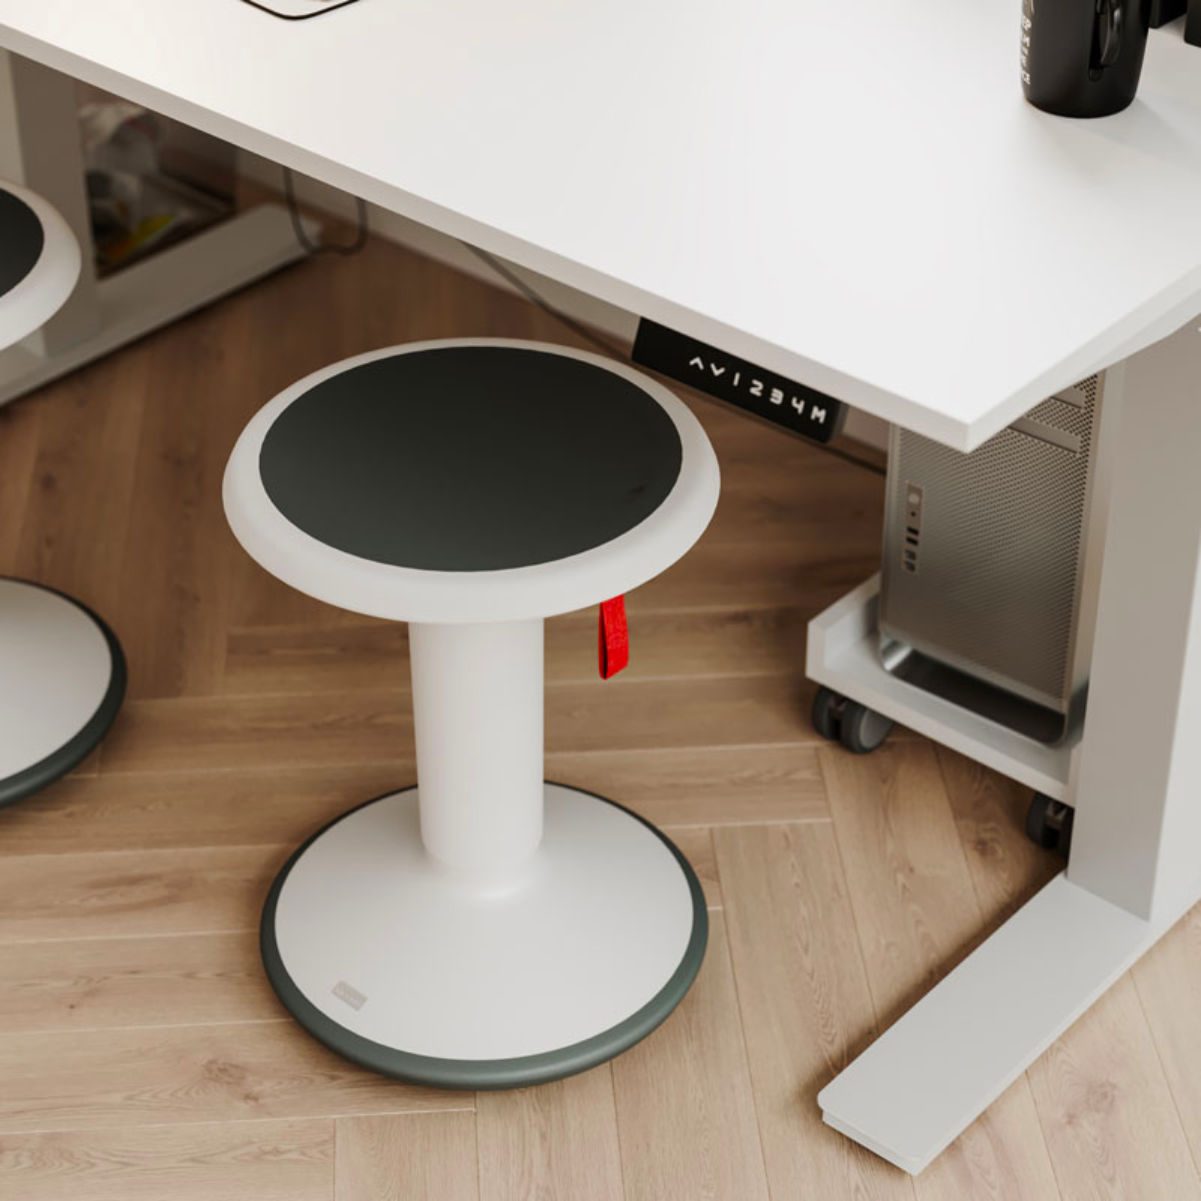 Upis1 Ergonomic Stool , Elegant White